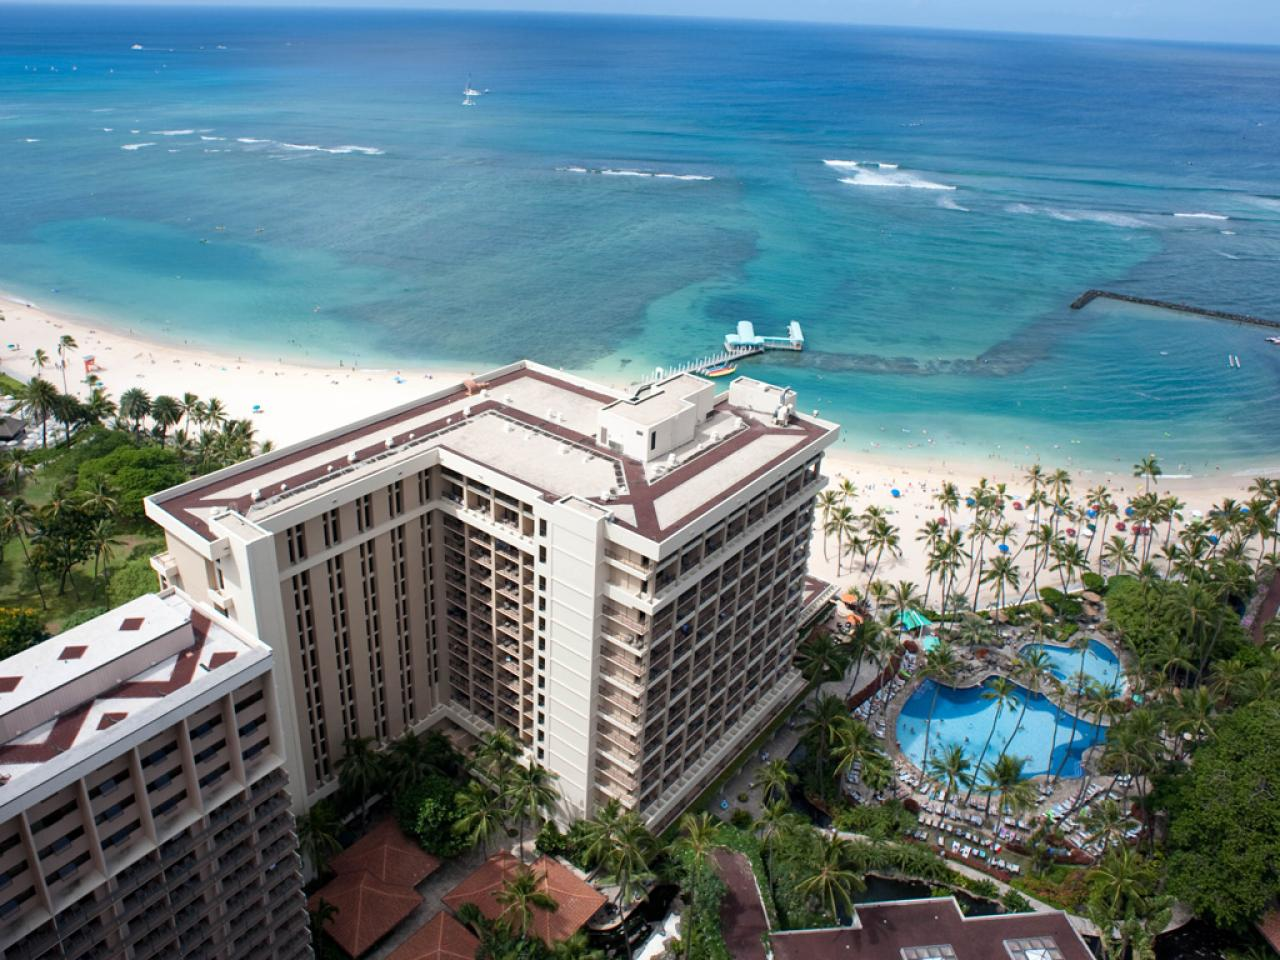 The Largest Resort In Hawaii Amenity Packed Hilton Hawaiian Village Has More To Offer Families Than Any Other Property